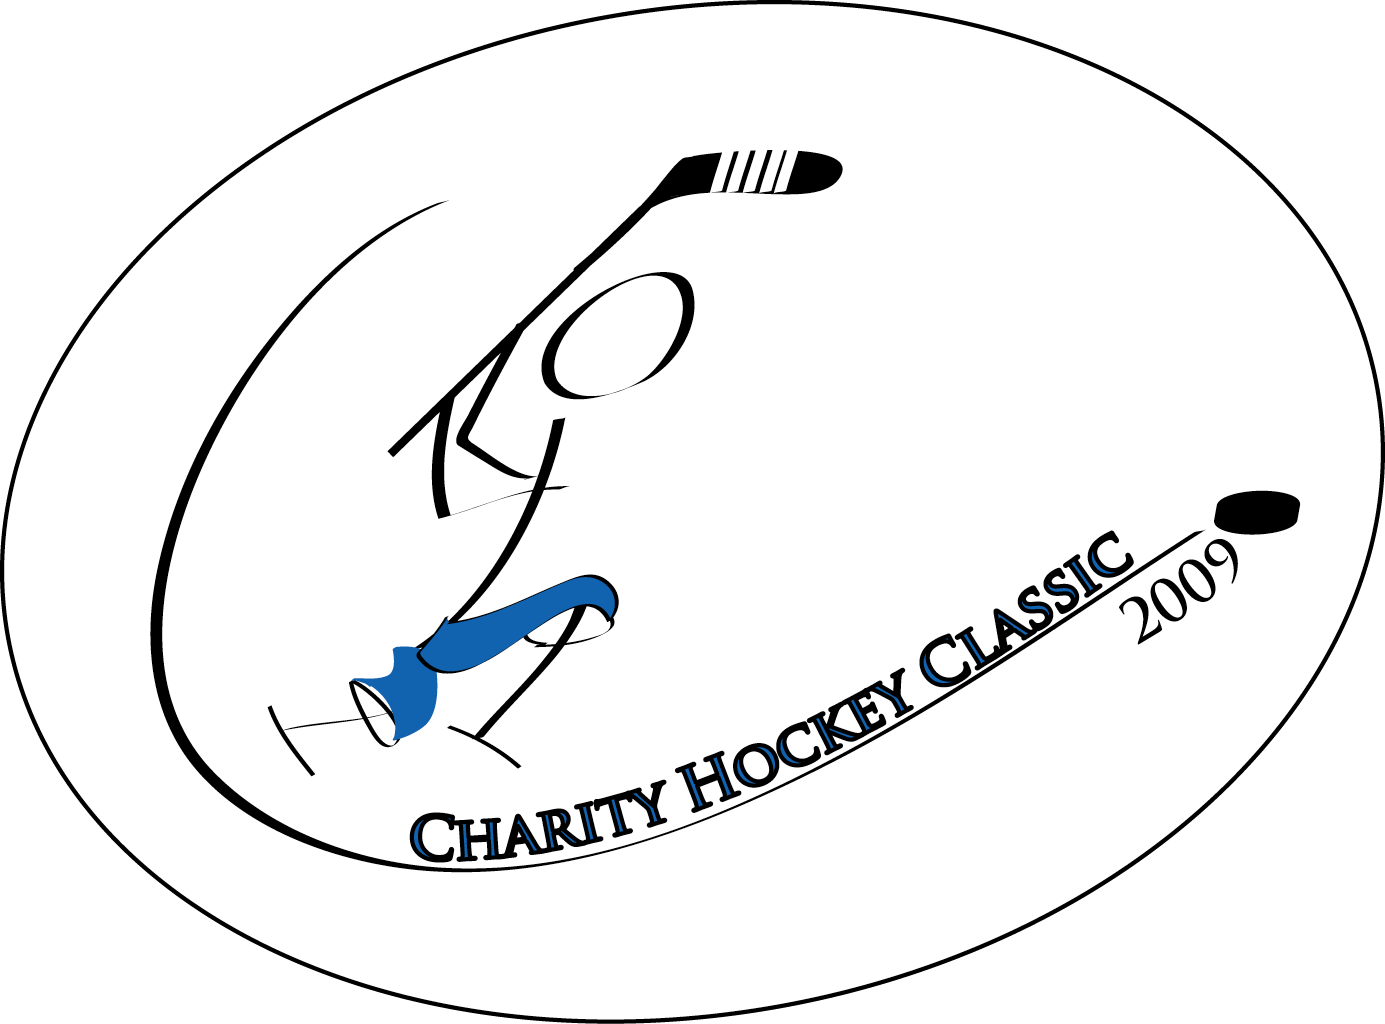 The Charity Hockey Classic